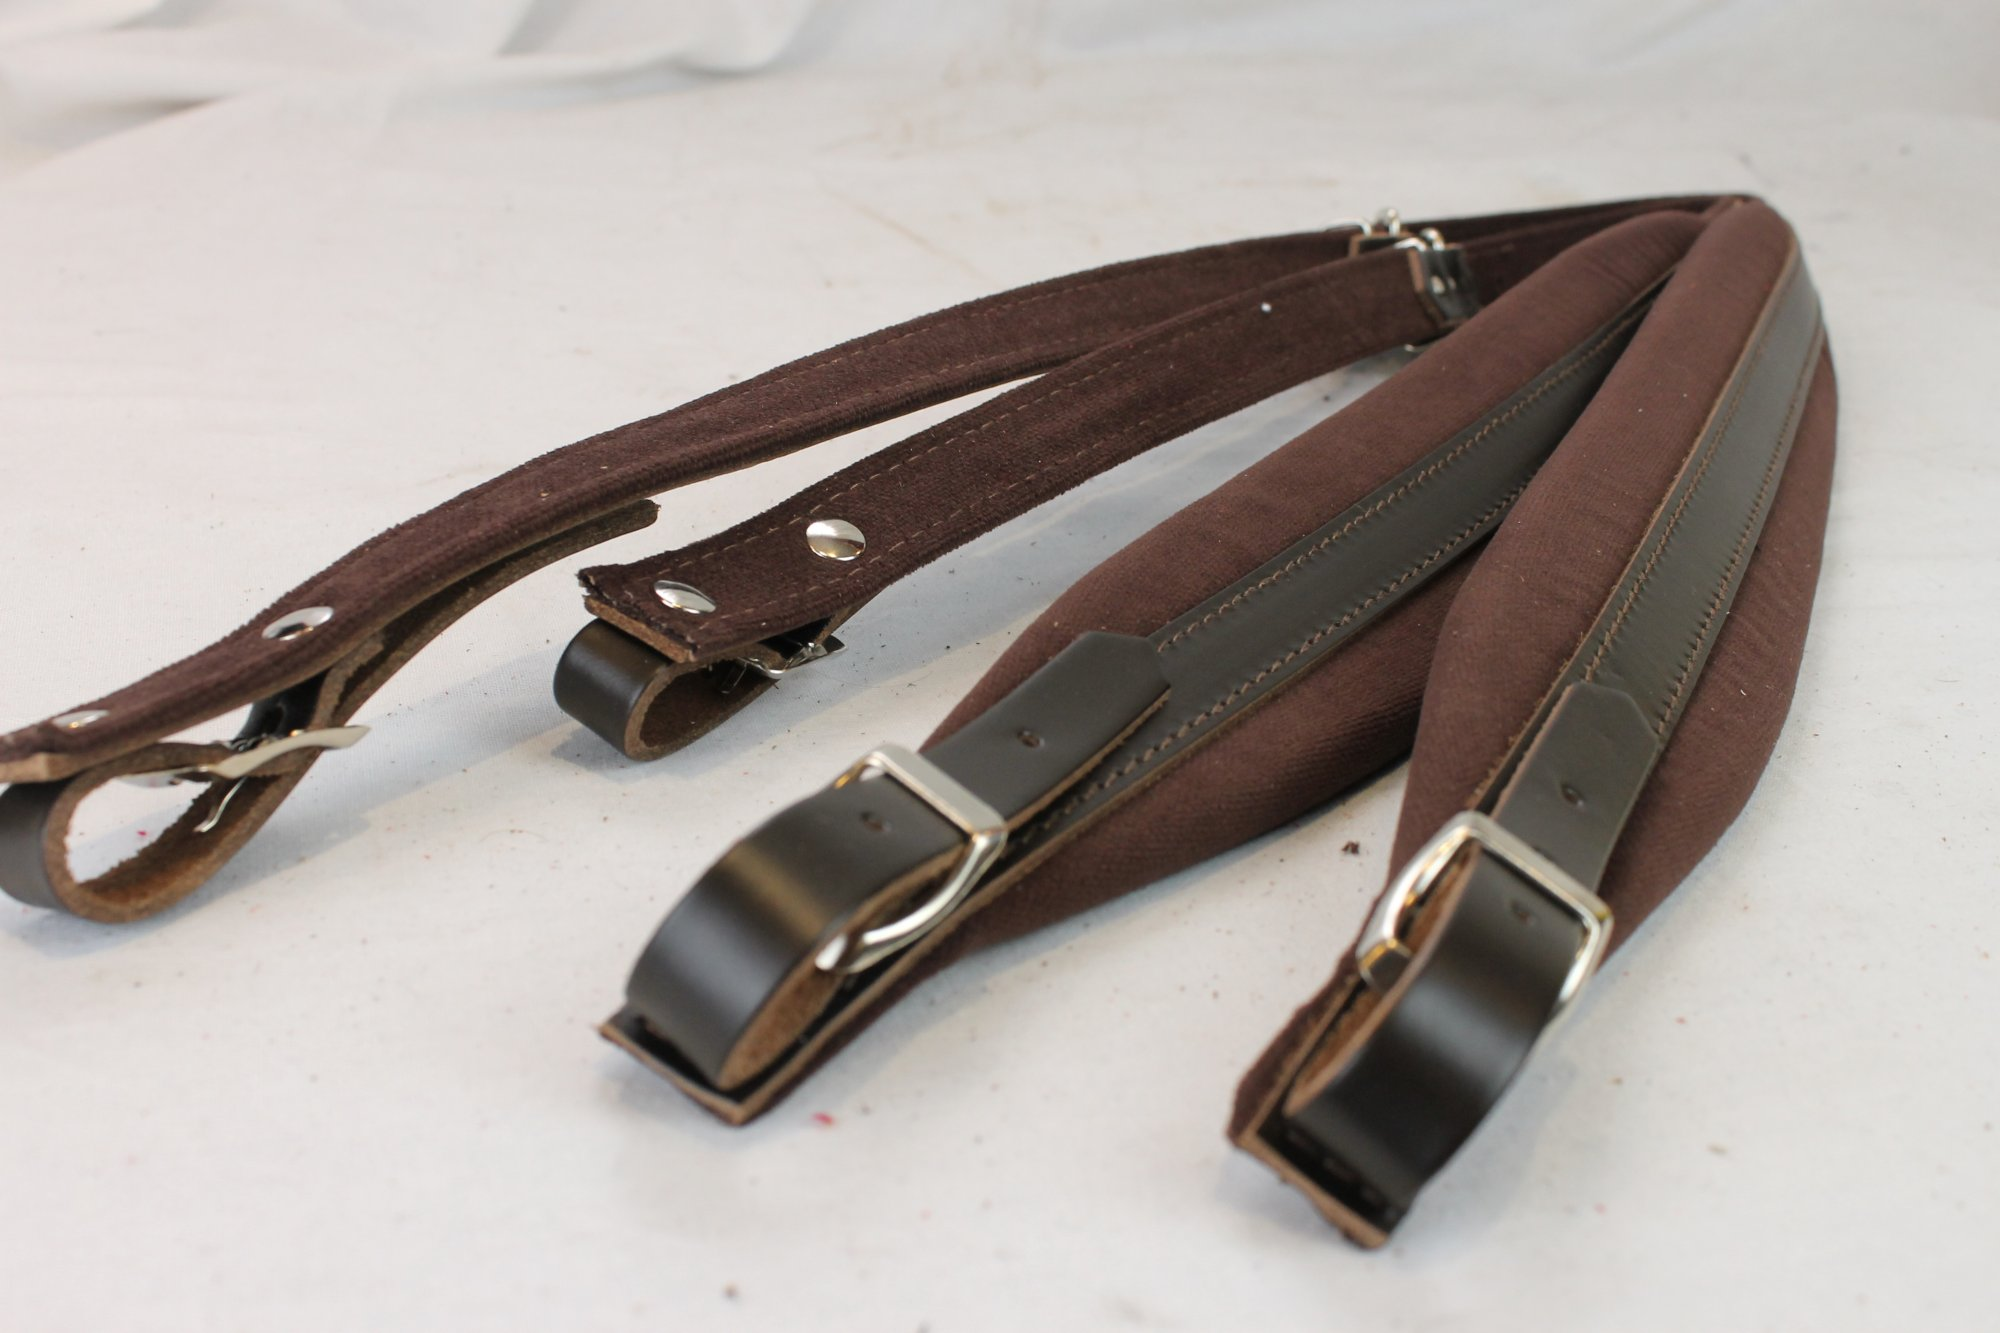 New Brown Leather Velour Fuselli Accordion Shoulder Straps Width (6cm / 2.4in) Length (91~111cm / 35.8~43.7in)